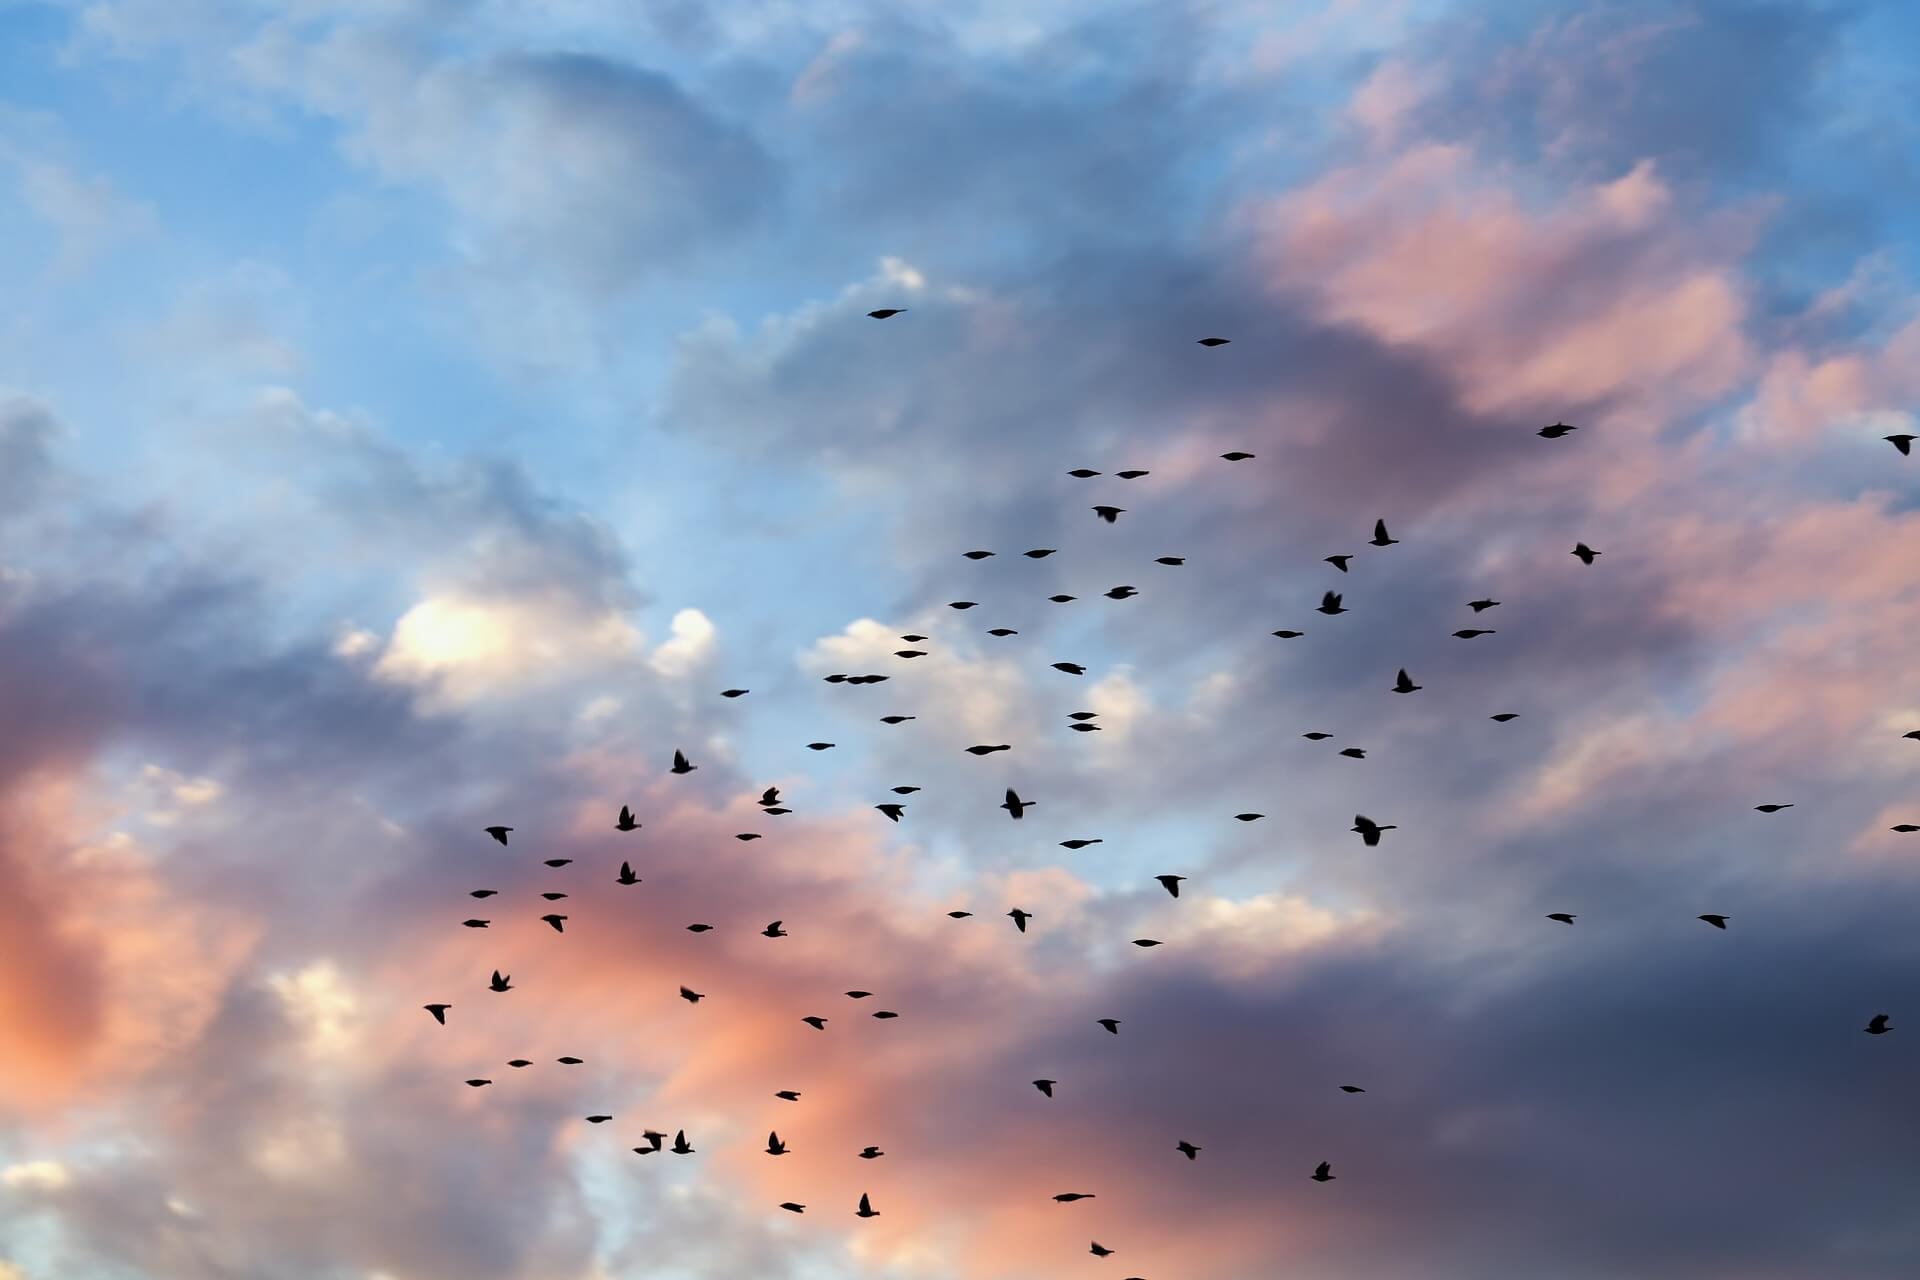 Birds Flying in a beautifully lit sky.